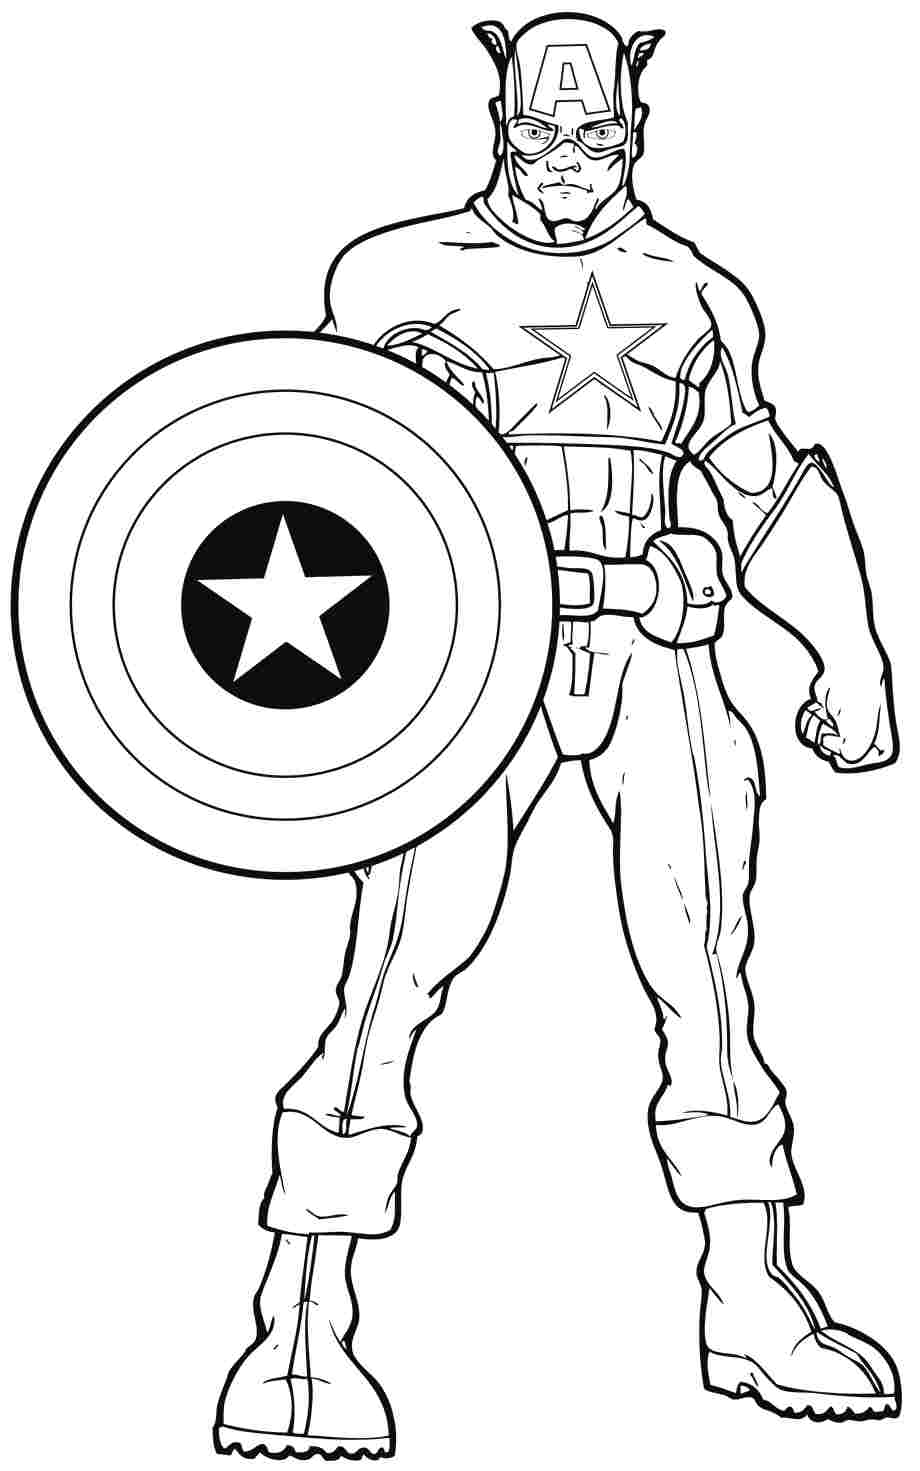 Coloring Pages Printable Coloring Pages Superheroes superhero printable coloring pages eassume com free comic book h u0026amp m